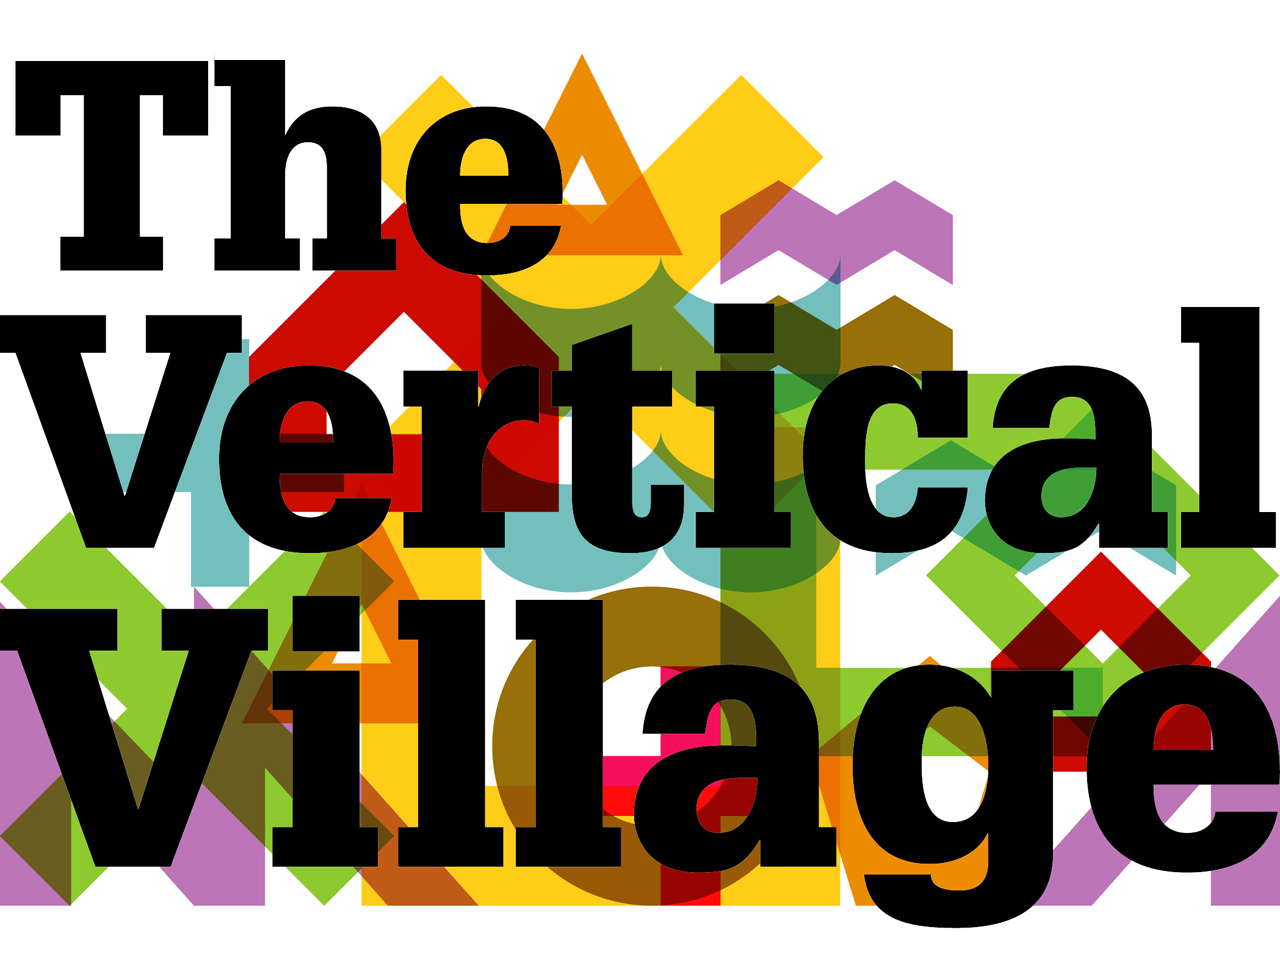 The Vertical Village Hamburg Exhibition Tour and Symposium